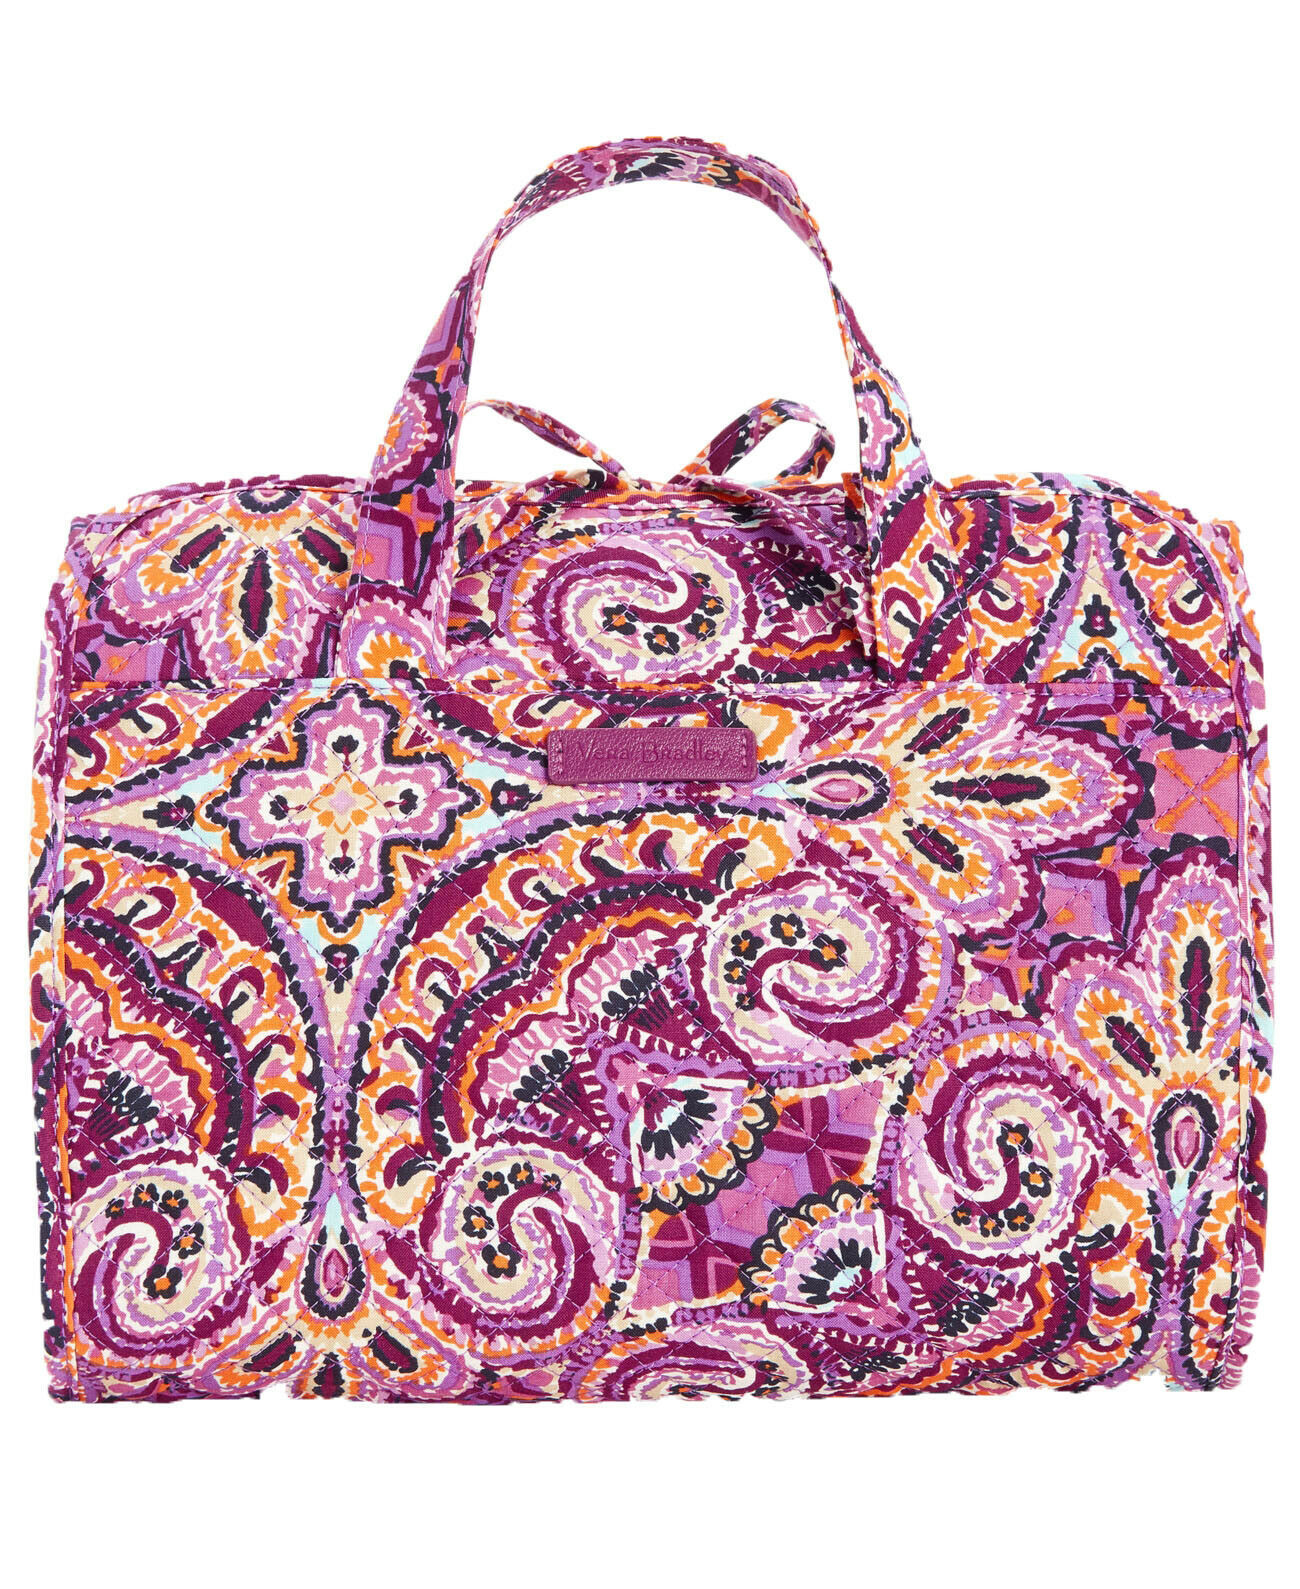 Vera Bradley Iconic Hanging Travel Organizer NWT Dream Tapestry Purple Packable image 6